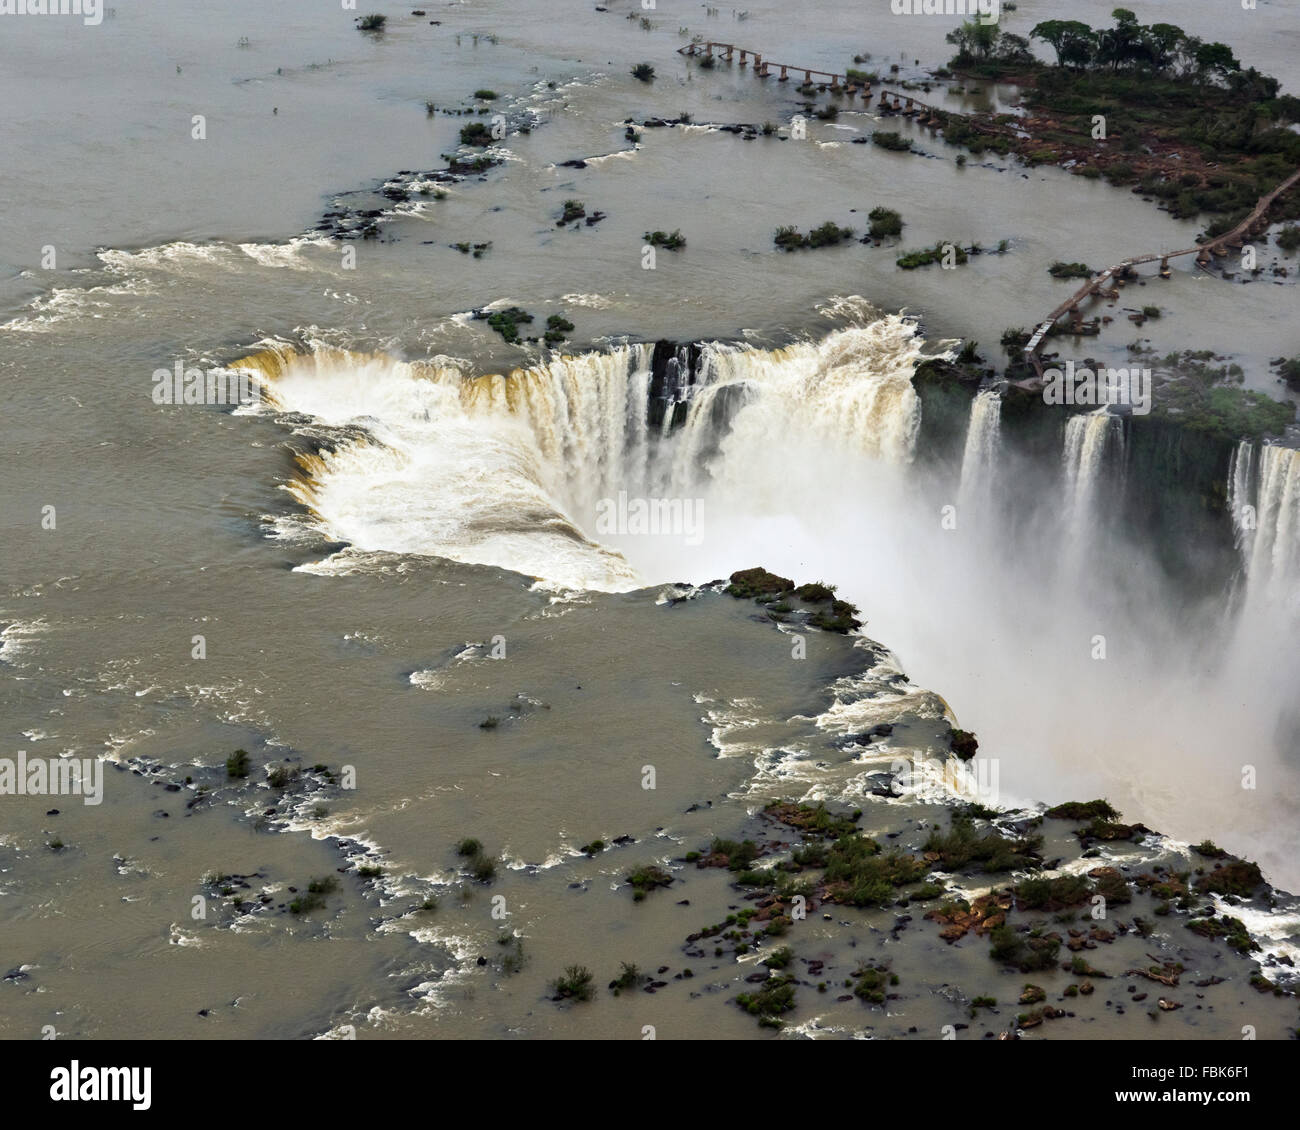 Aerial view, Garganta do Diablo (Devil's Throat) with small birds and ruined walkway, Foz do Iguacu, Brazil - Stock Image